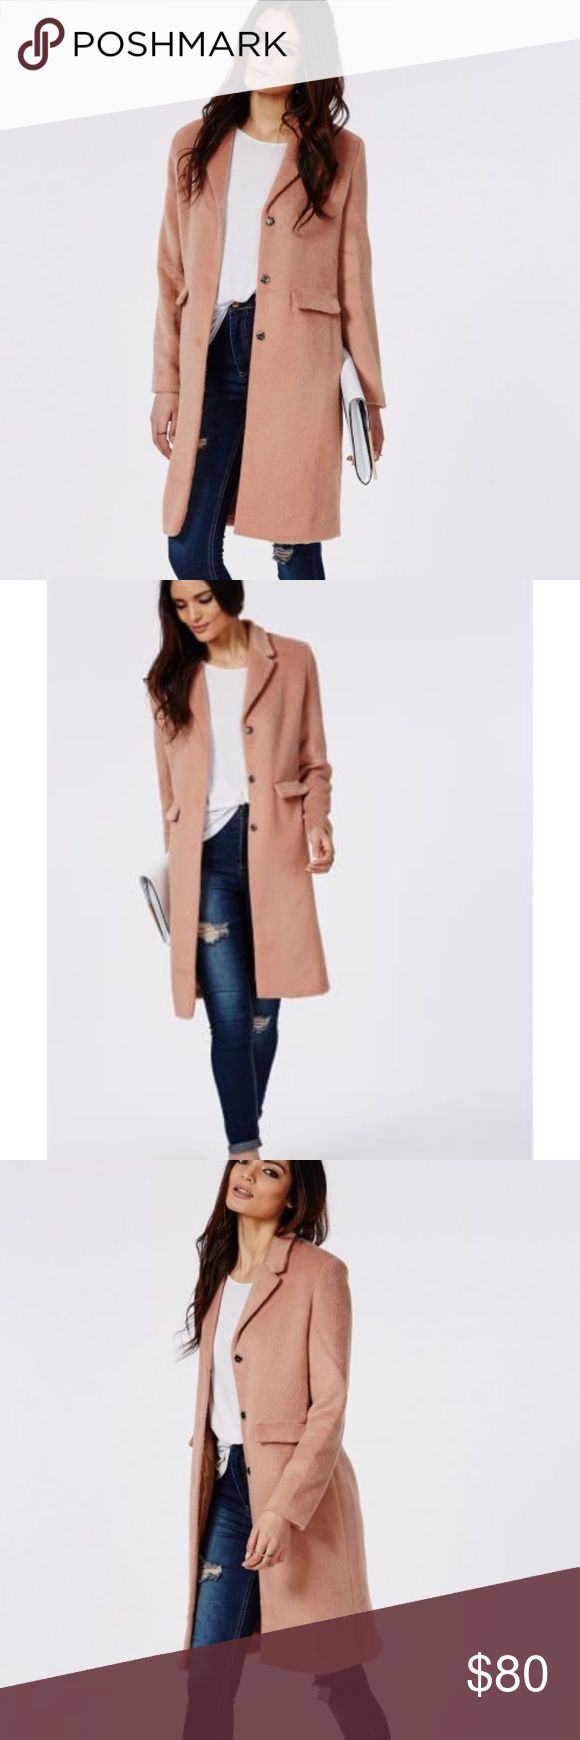 """Missguided Hether Tailored Boyfriend Coat Worn twice. Tailored, chic and in the coolest colour of the season, our blush three quarter length coat is an investment to make. With a jacket collar and two pockets, the detail gives a masculine edge to the feminine soft touch fabric creating the perfect balance of trends. Wear yours with neutral tones of cream, grey, black or navy for catwalk-worthy style. Fully lined Approx length 96cm/38"""" (based on a UK size 8 sample) 100% Polyester Missguided…"""